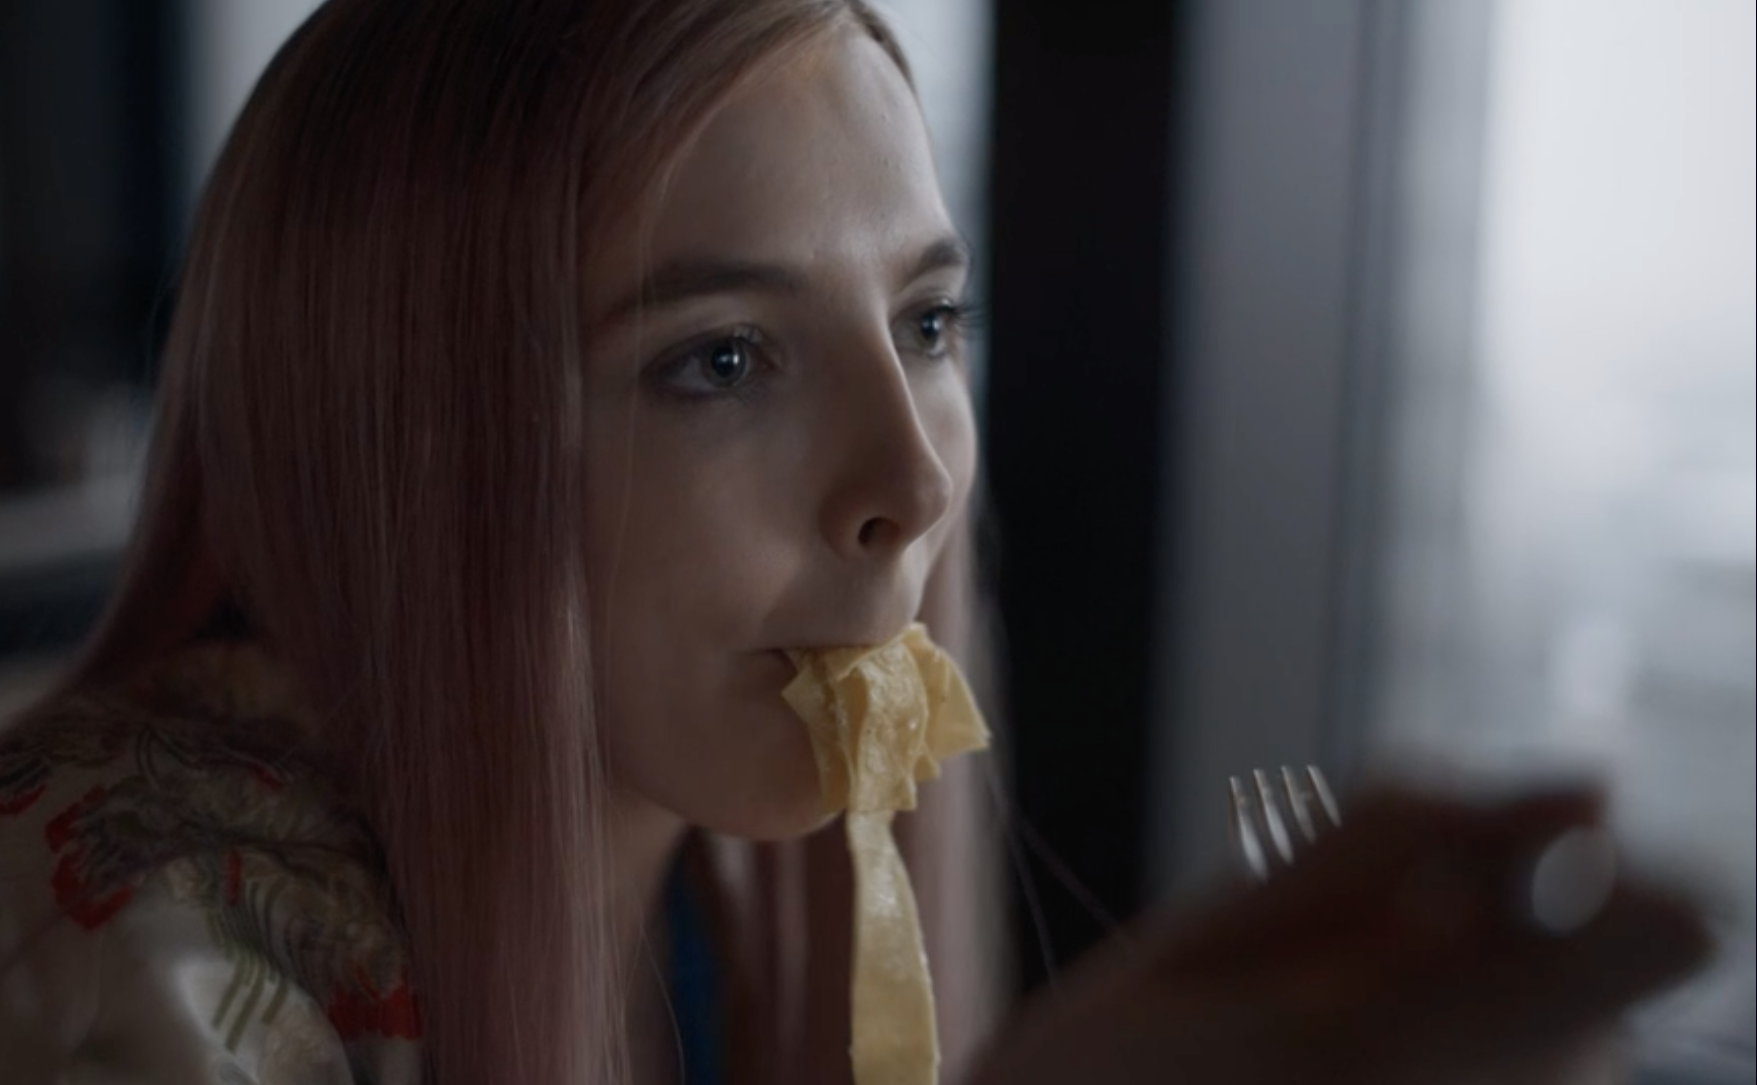 Killing Eve's Villannelle, played by Jodie Comer, has a pasta scene in season two in a Michelin-starred London restaurant